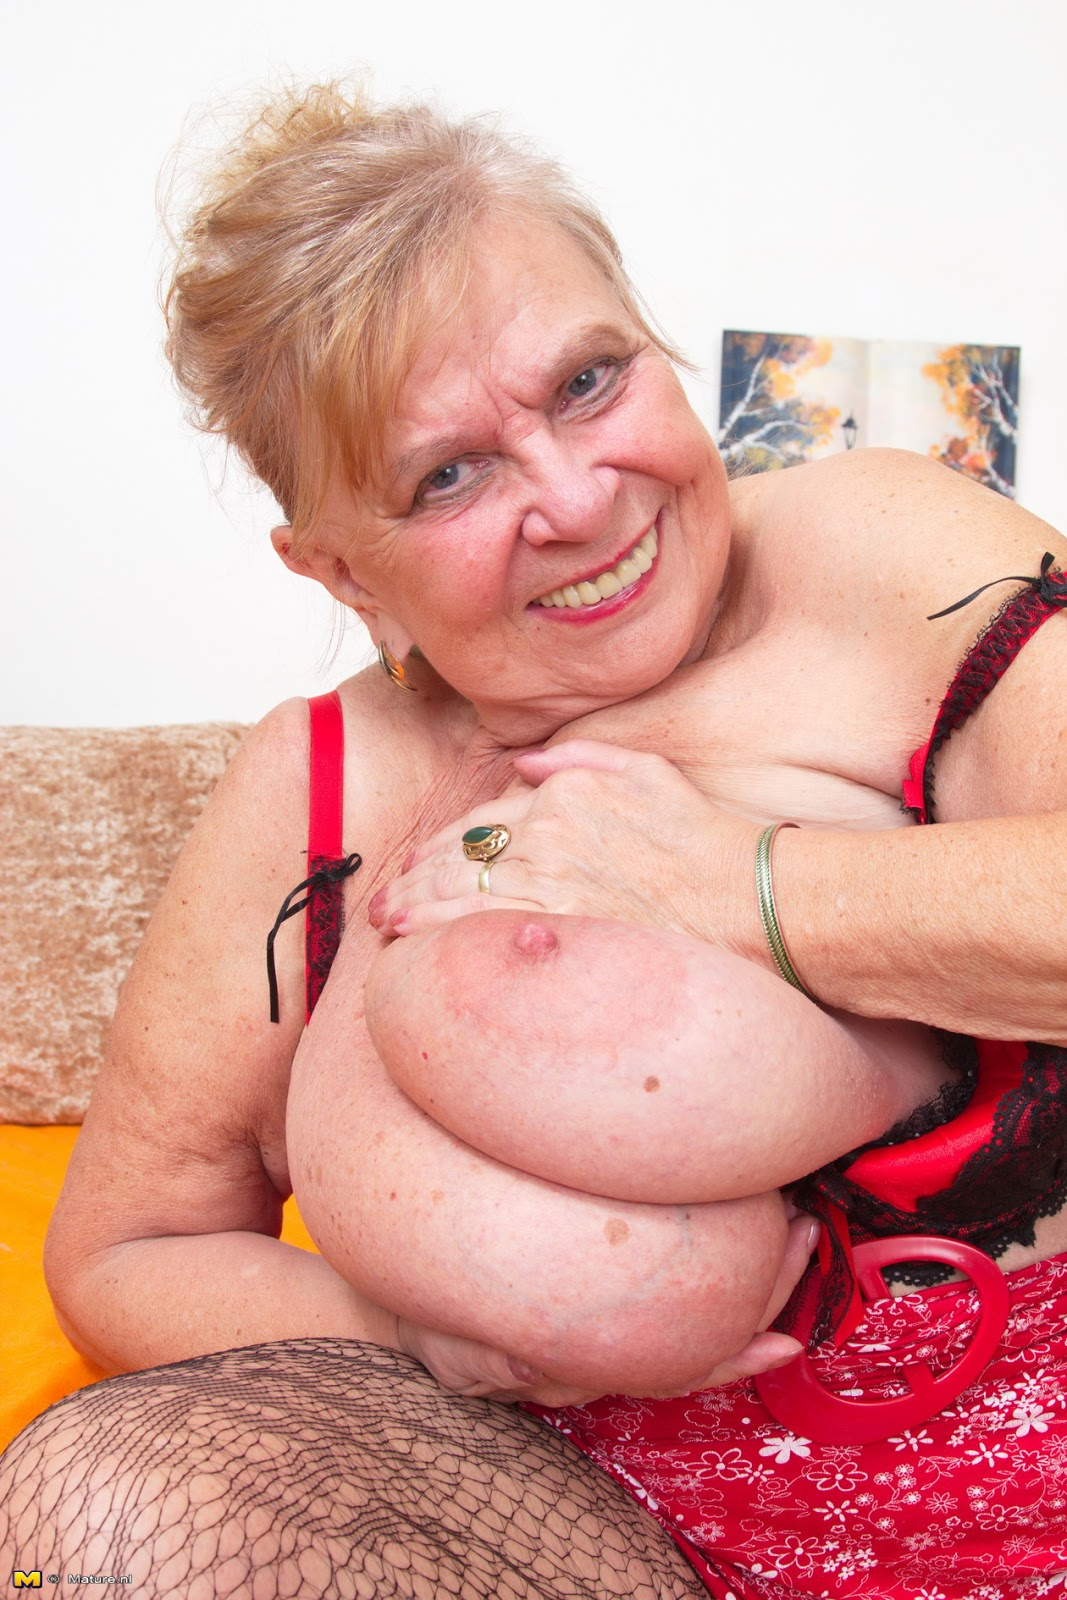 Bad big breasted grannys know